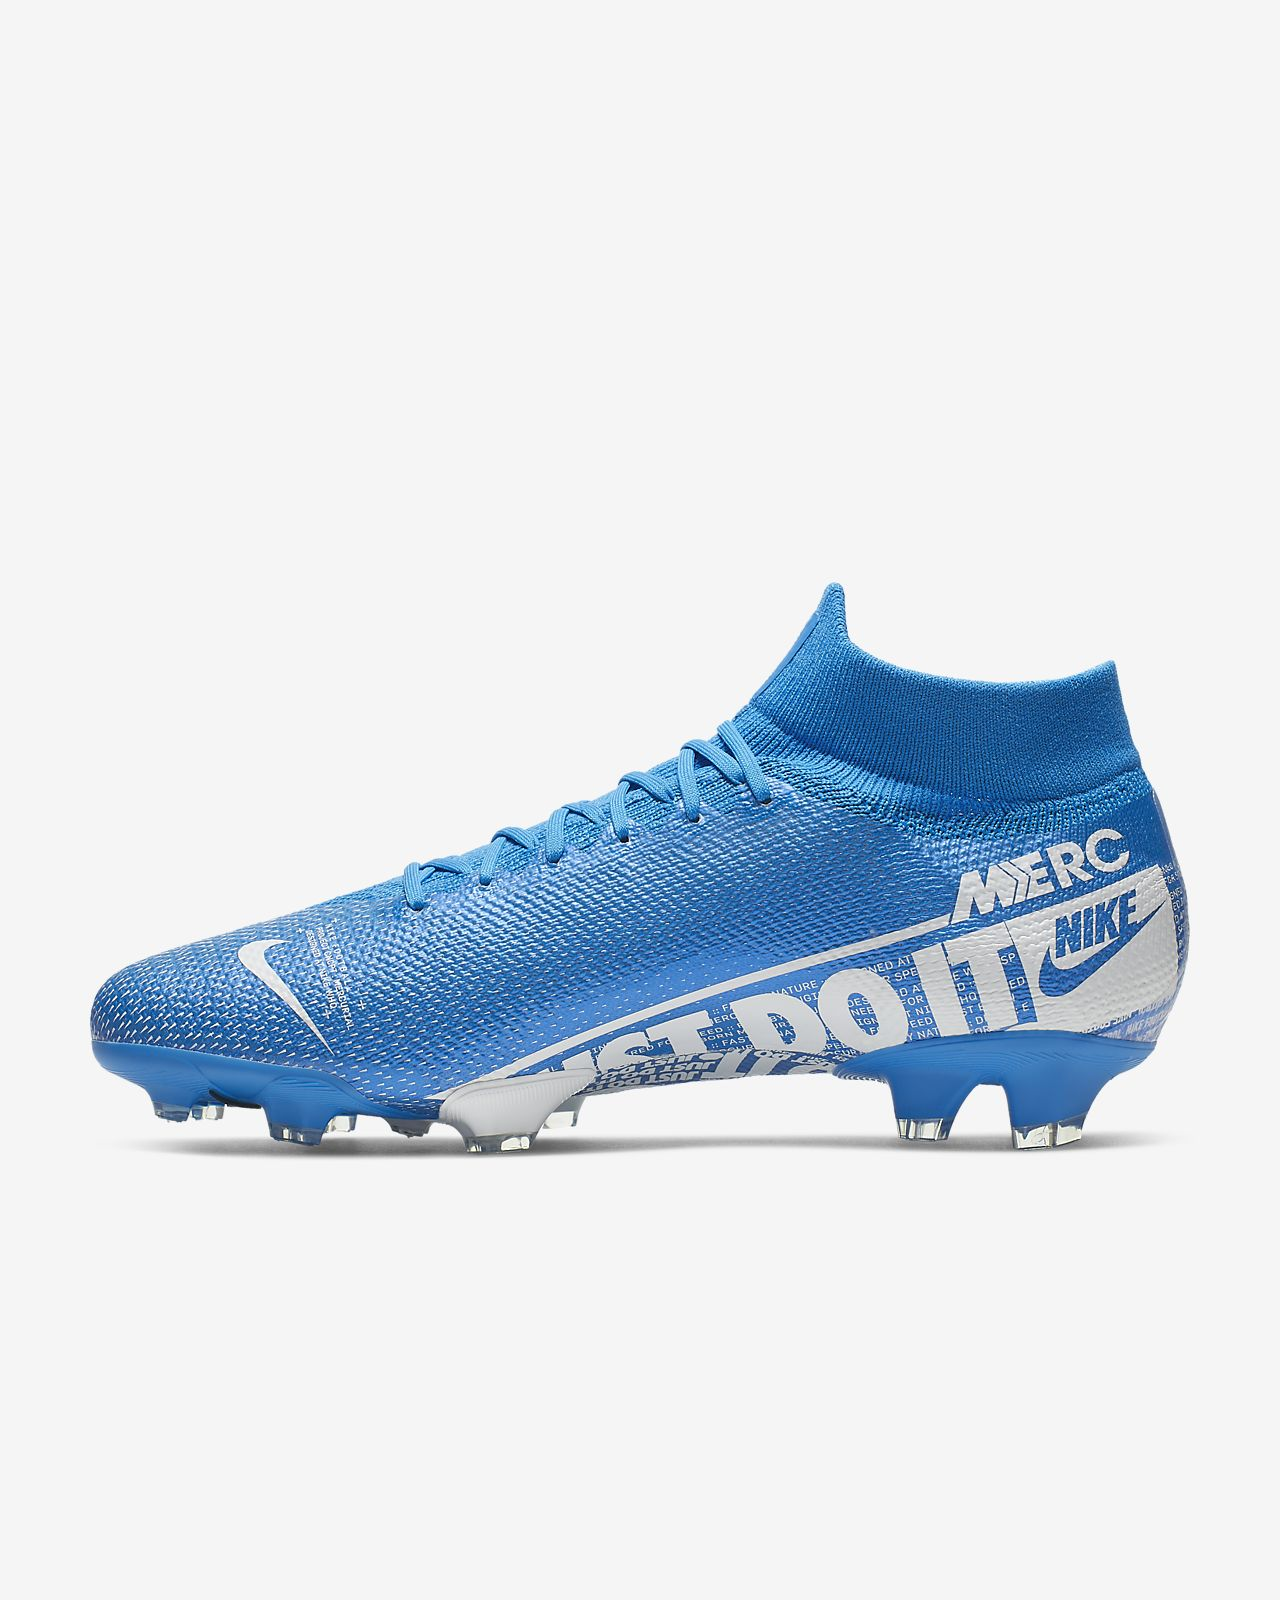 promo code 69d7f 1d8d8 Nike Mercurial Superfly 7 Pro FG Firm-Ground Soccer Cleat